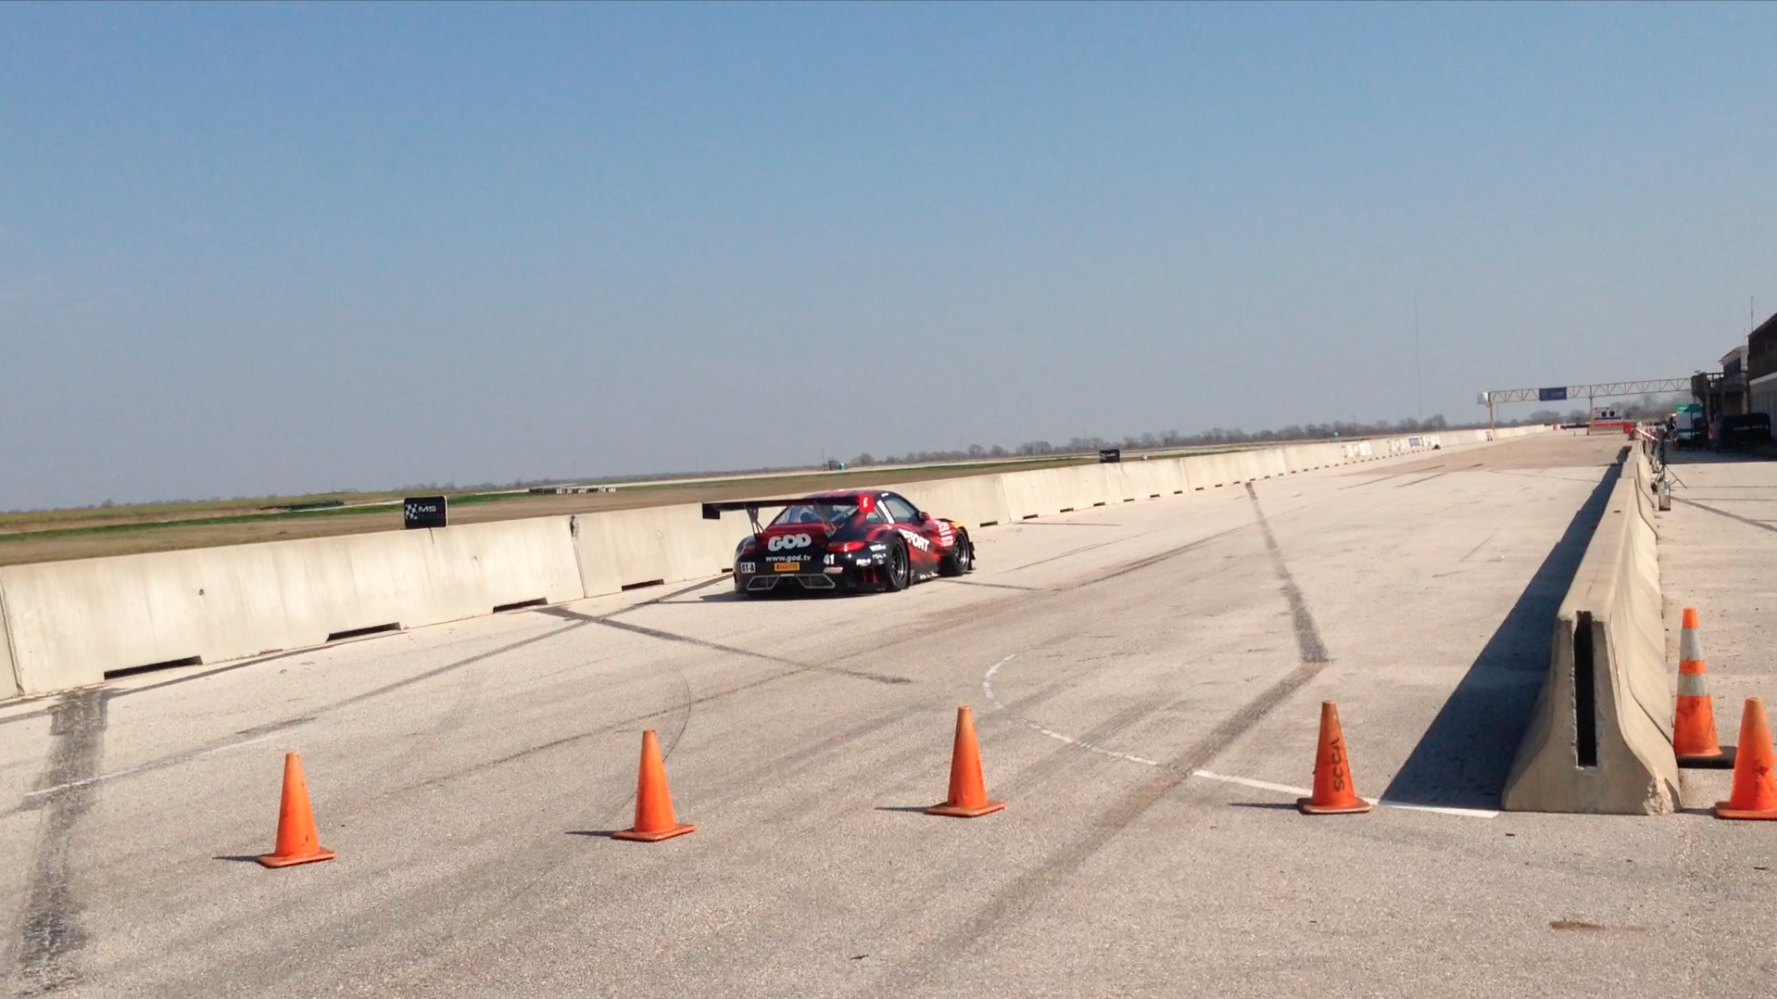 car blowing by us on the straightaway